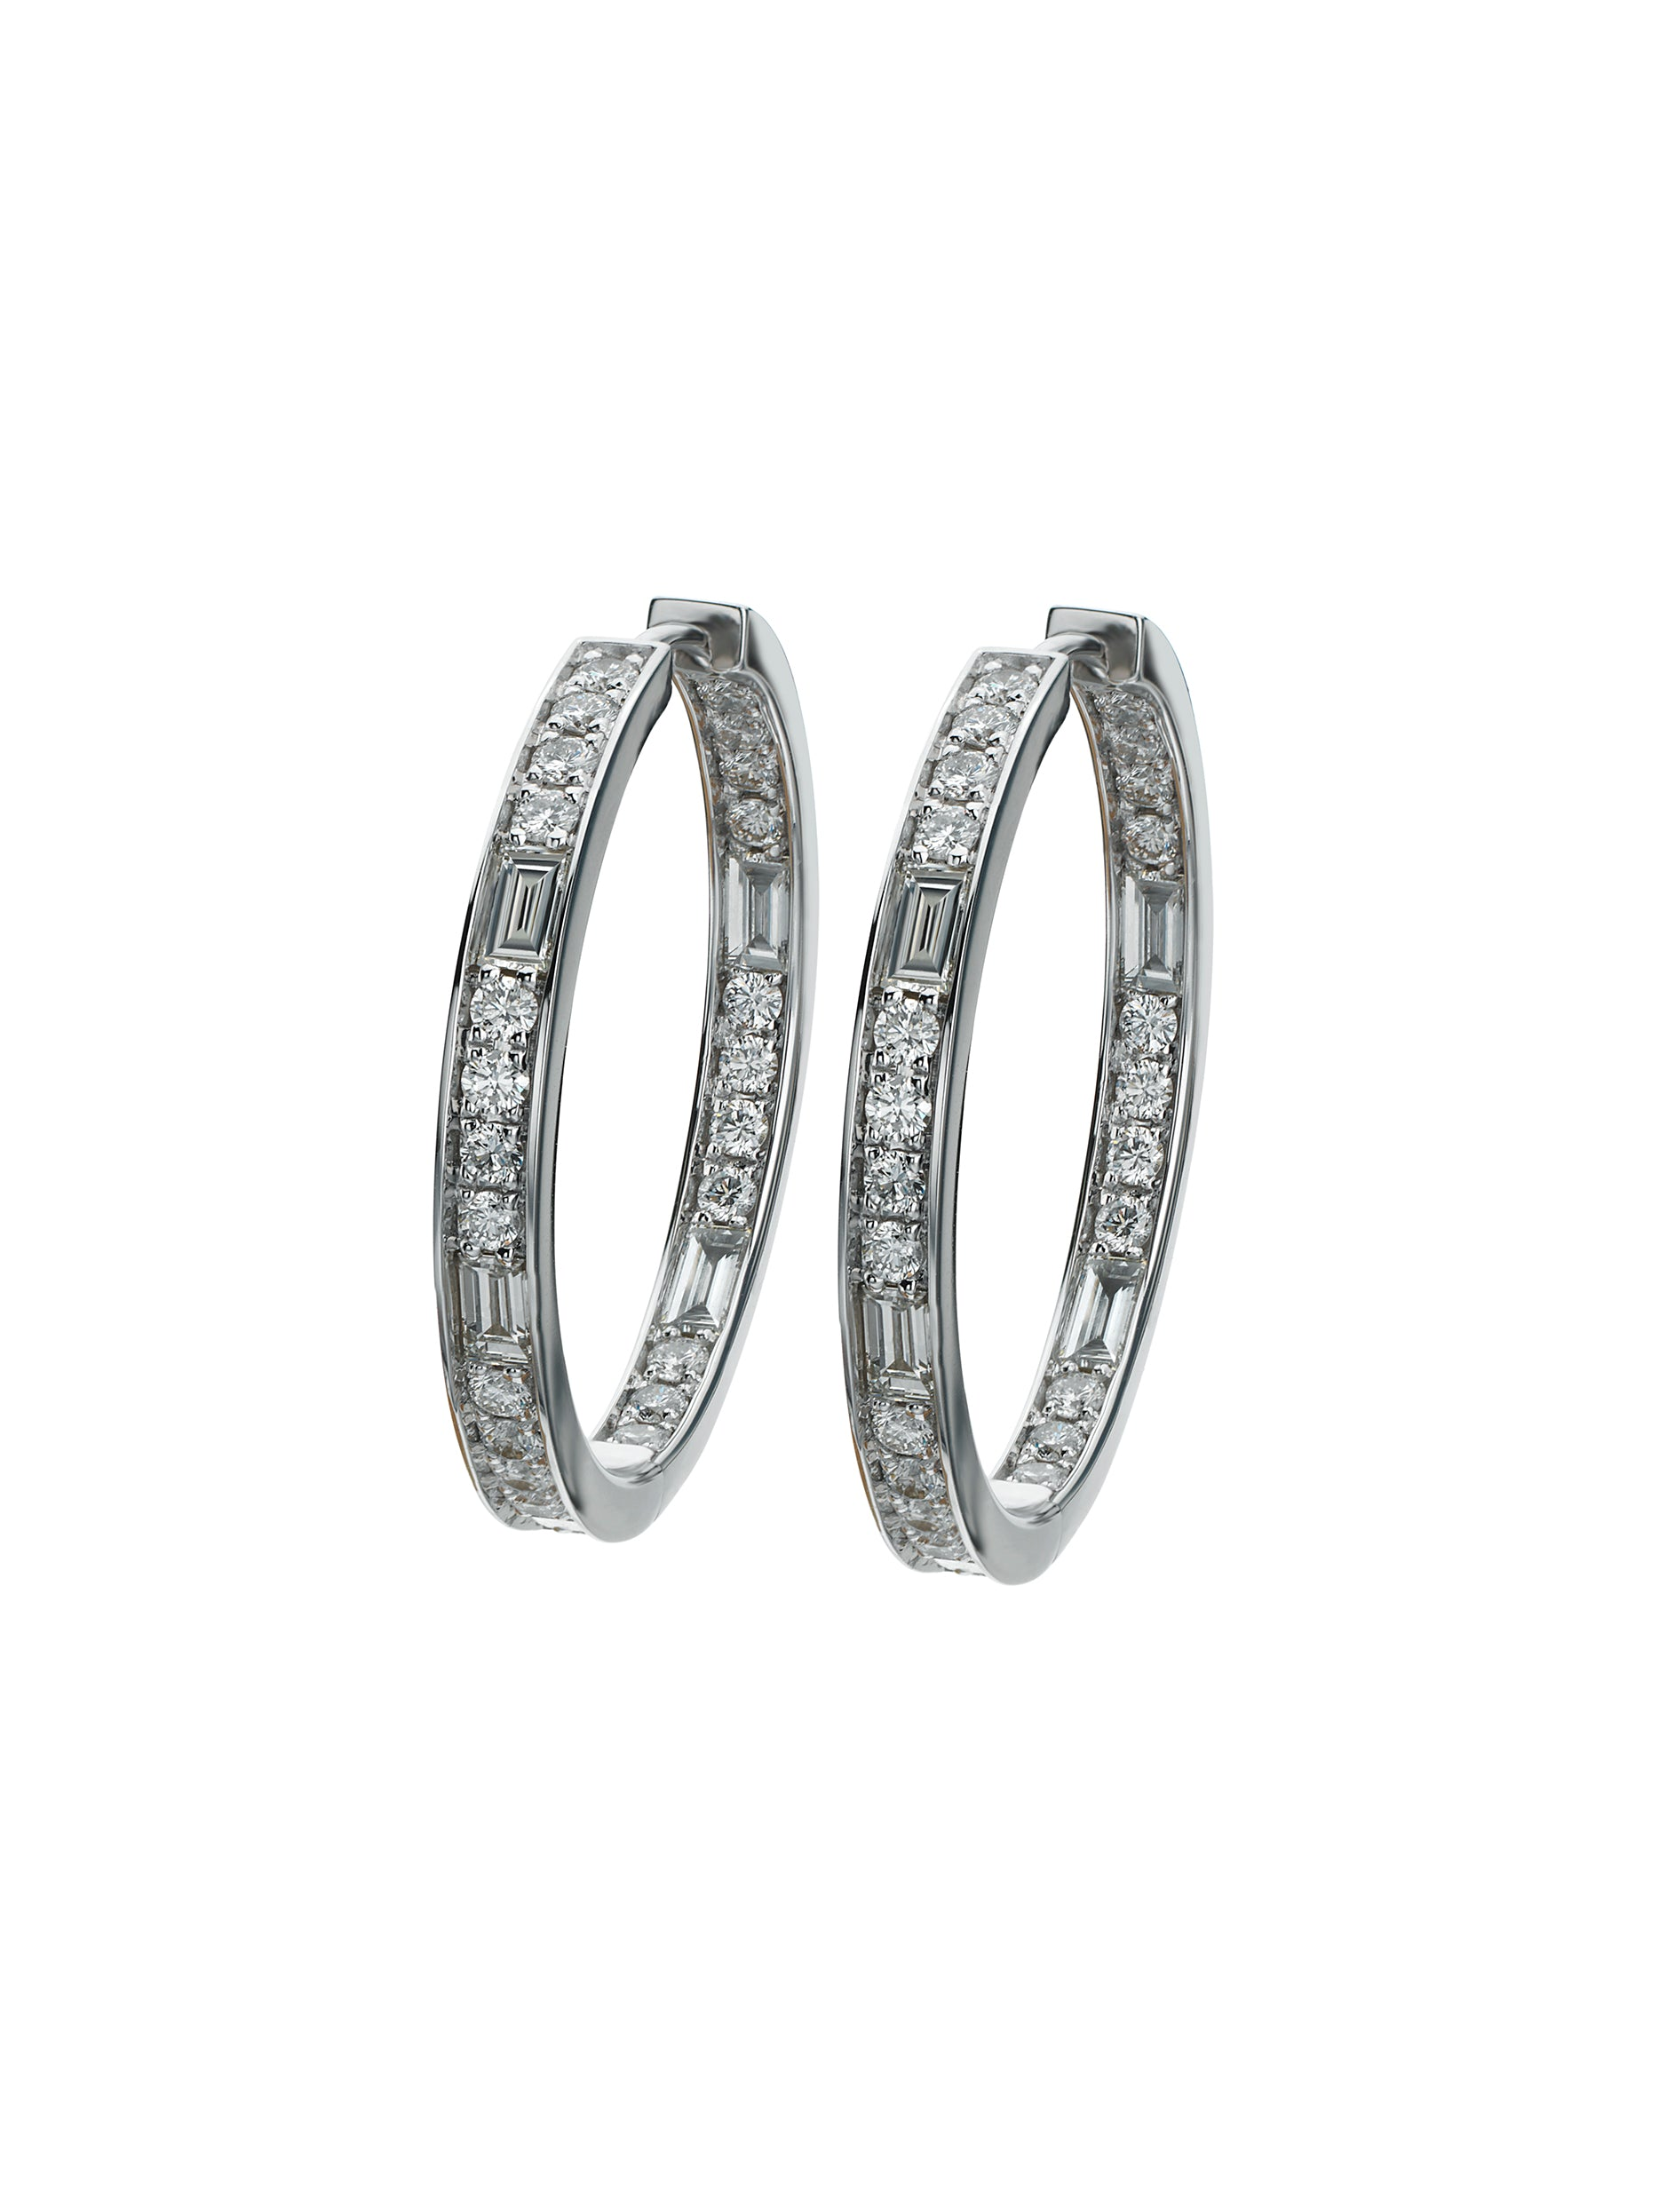 Dot-Dash Hoop Earrings 1.25""